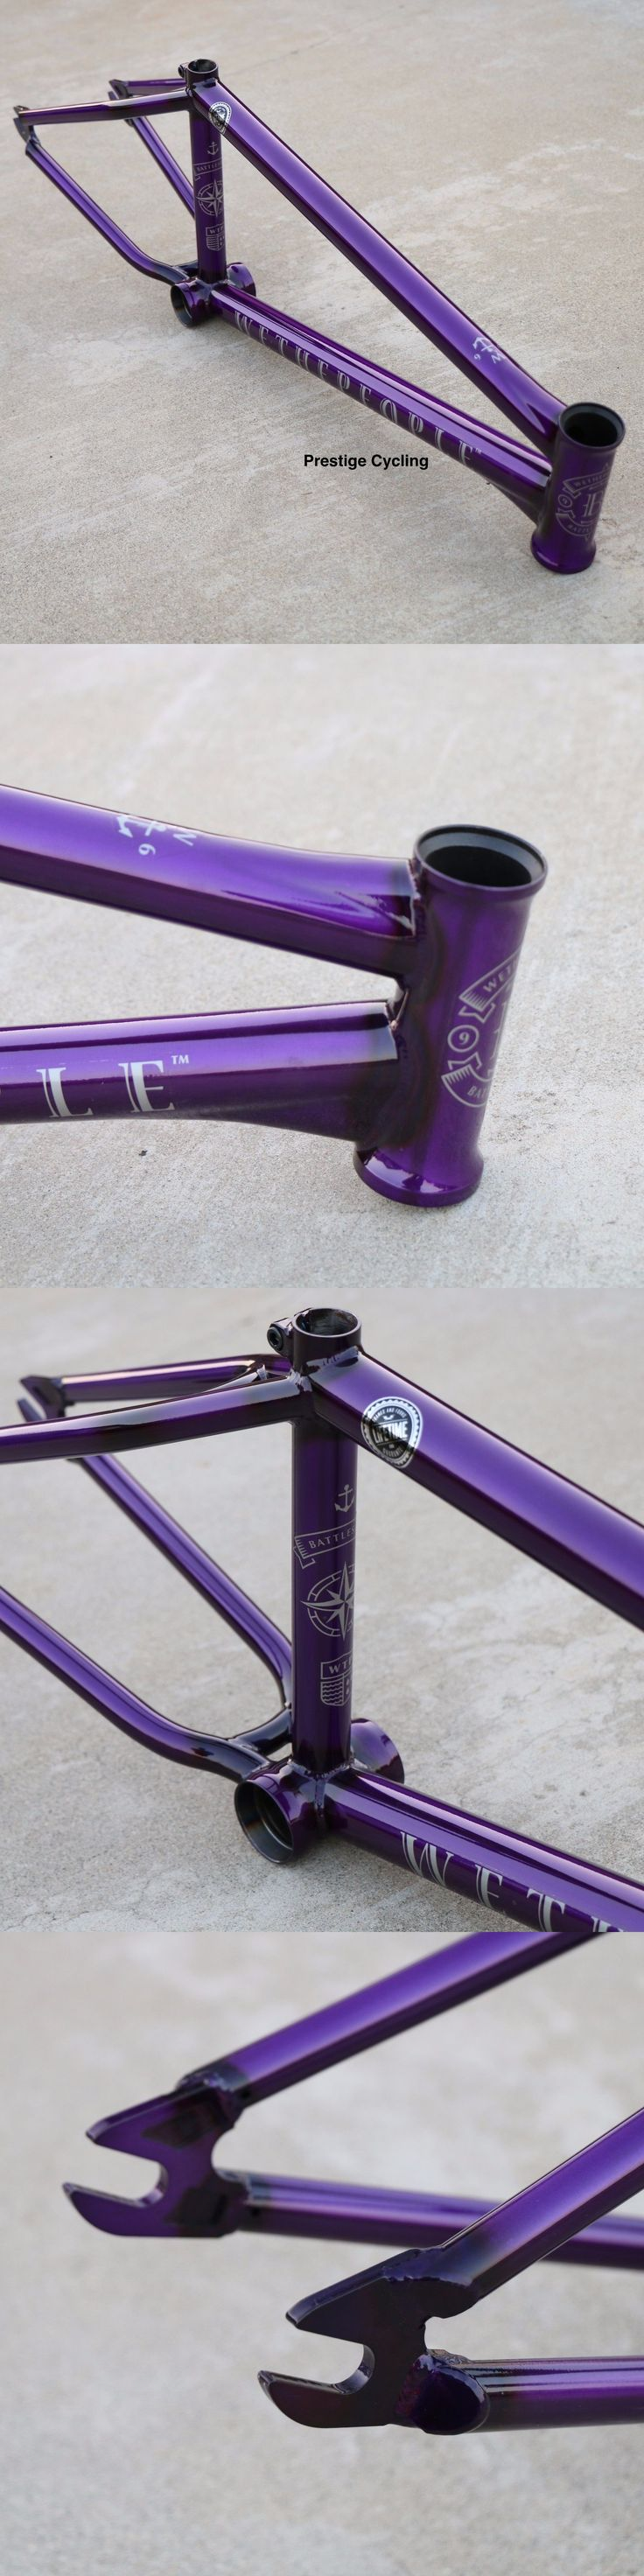 bicycle parts: We The People Bmx Battleship Bicycle Frame 21 Trans Purple Sunday Fit Cult -> BUY IT NOW ONLY: $319.95 on eBay!